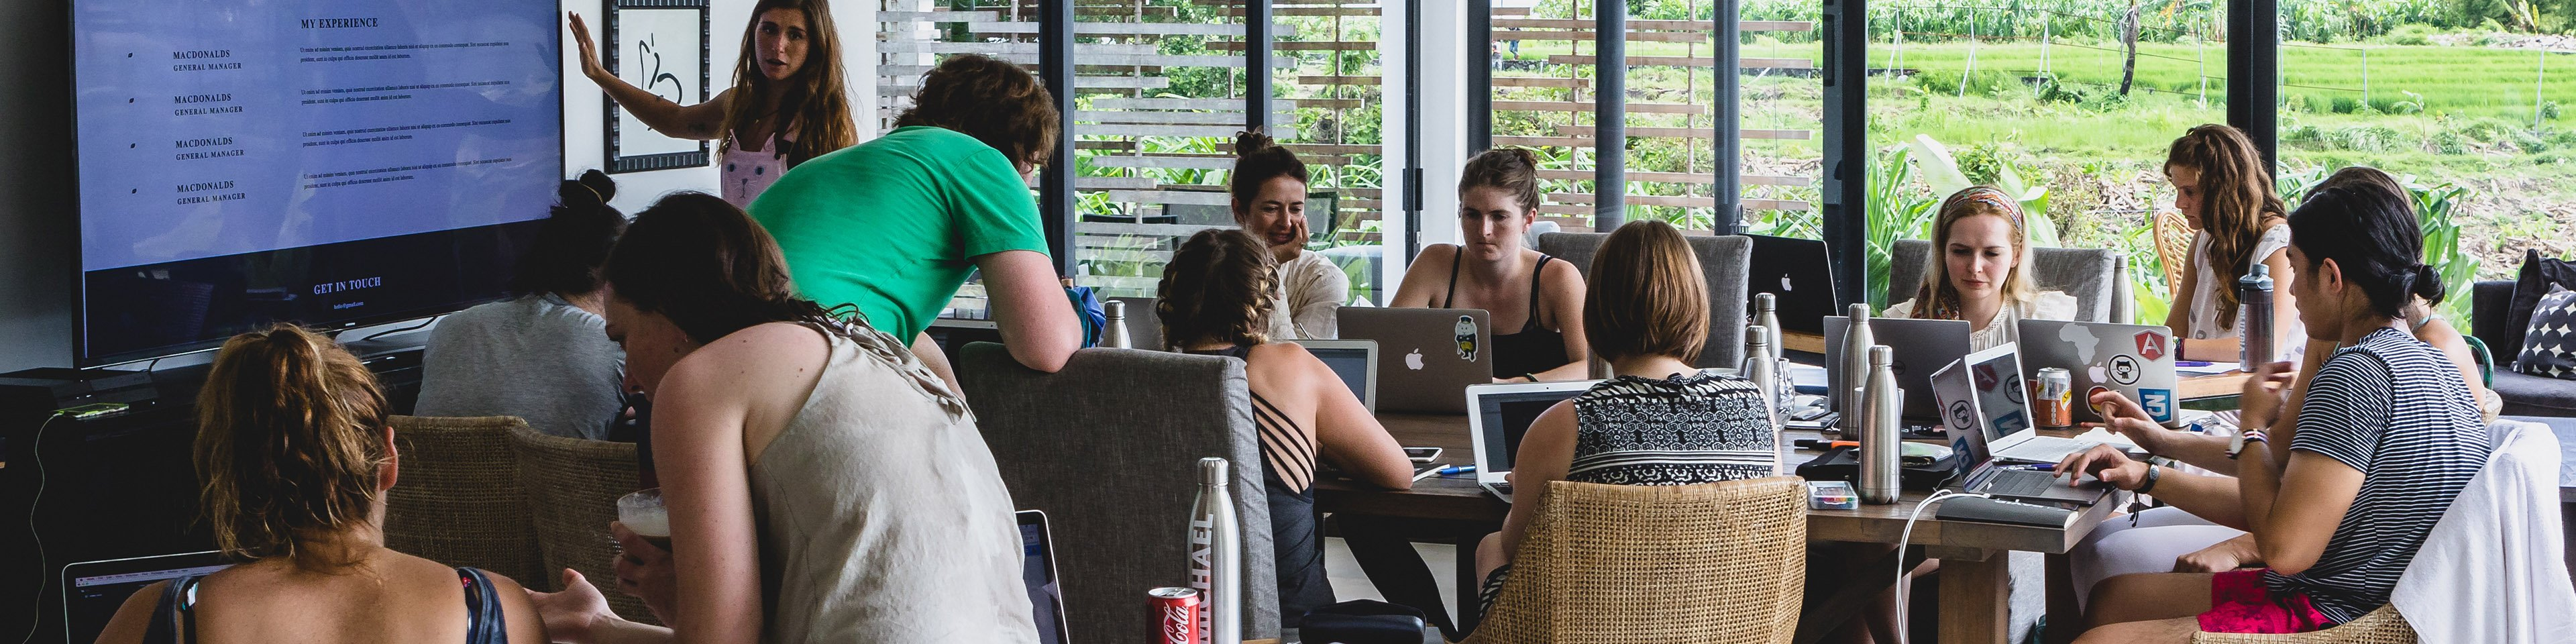 Learn HTML, CSS and how to code at the Institute of Code, Bali Indonesia